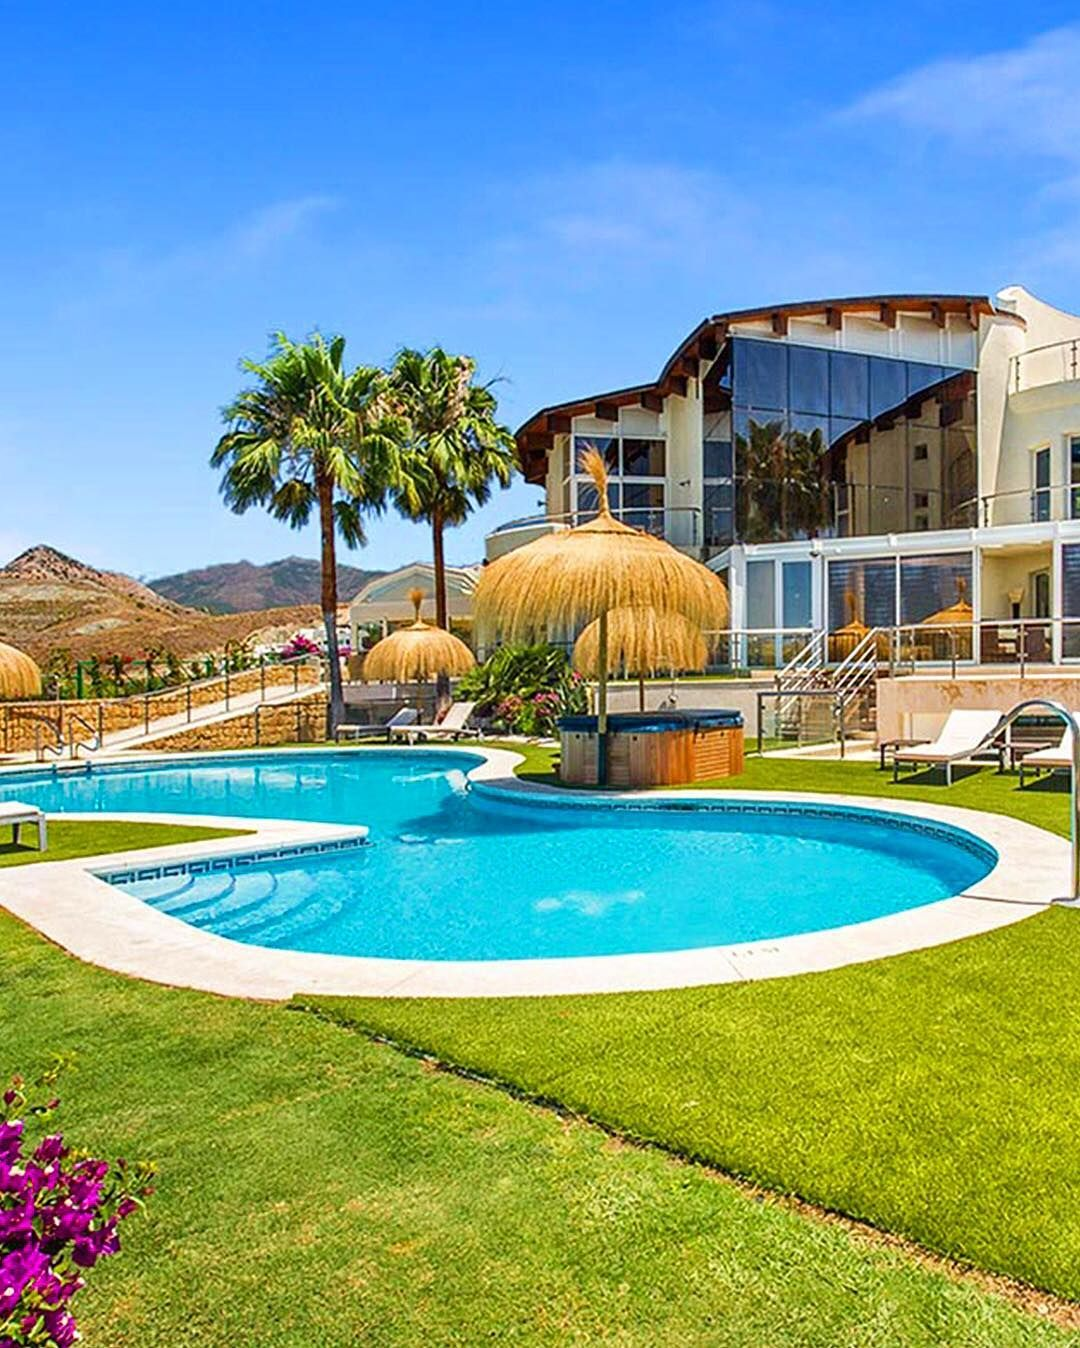 Amenities on hand at Villa El Cid in #Spain are extensive and include generous heated outdoor AND indoor swimming pools three hot tubs (including one on the roof top - yes!) and sauna. This TripAdvisor Vacation Rental sleeps 20 so start tagging your squad  and then book it!